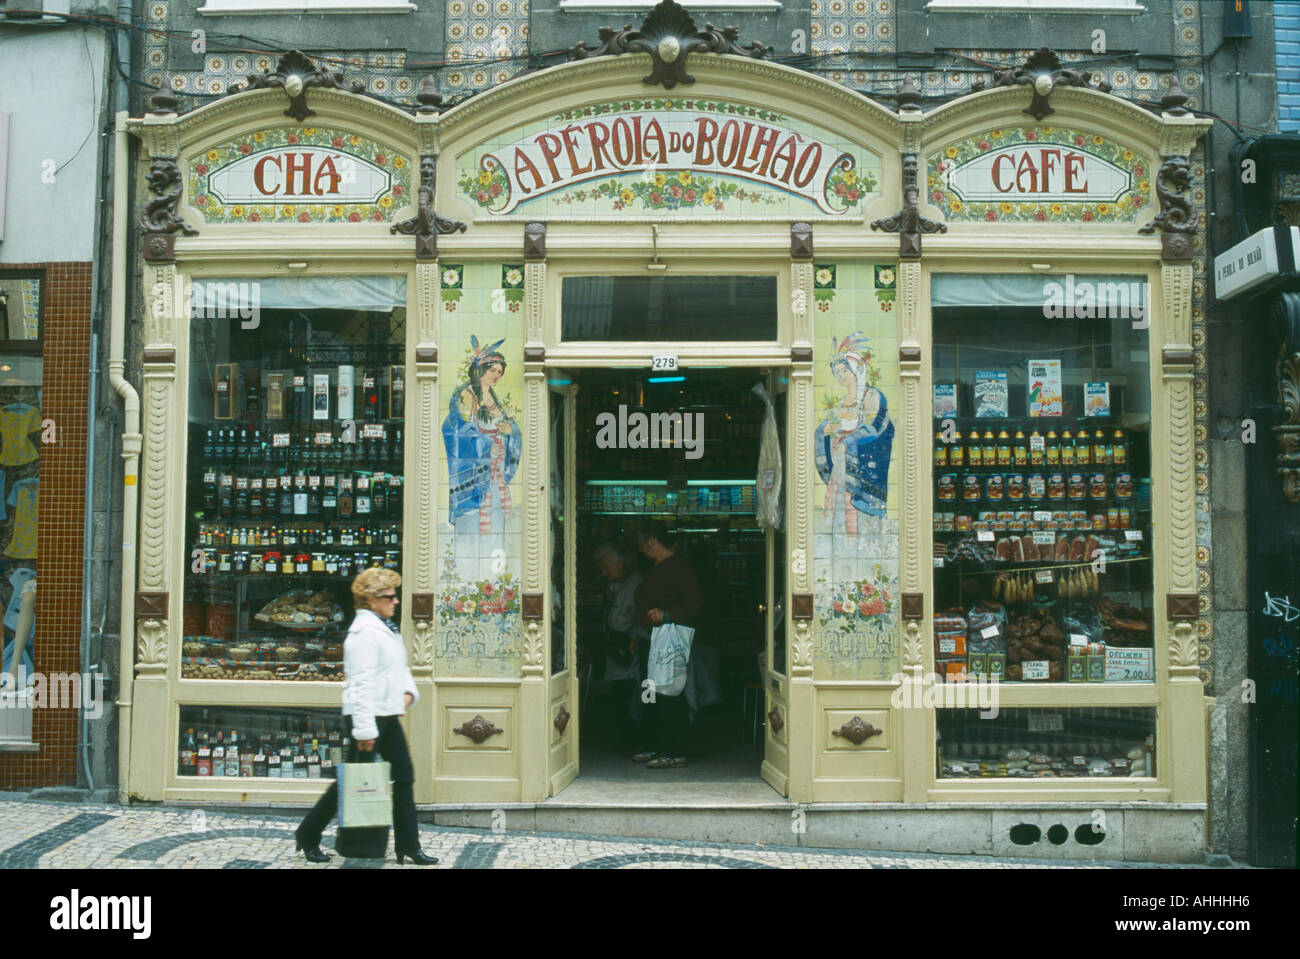 PORTUGAL Porto Oporto Shop front with mosaic tiles and display of ...